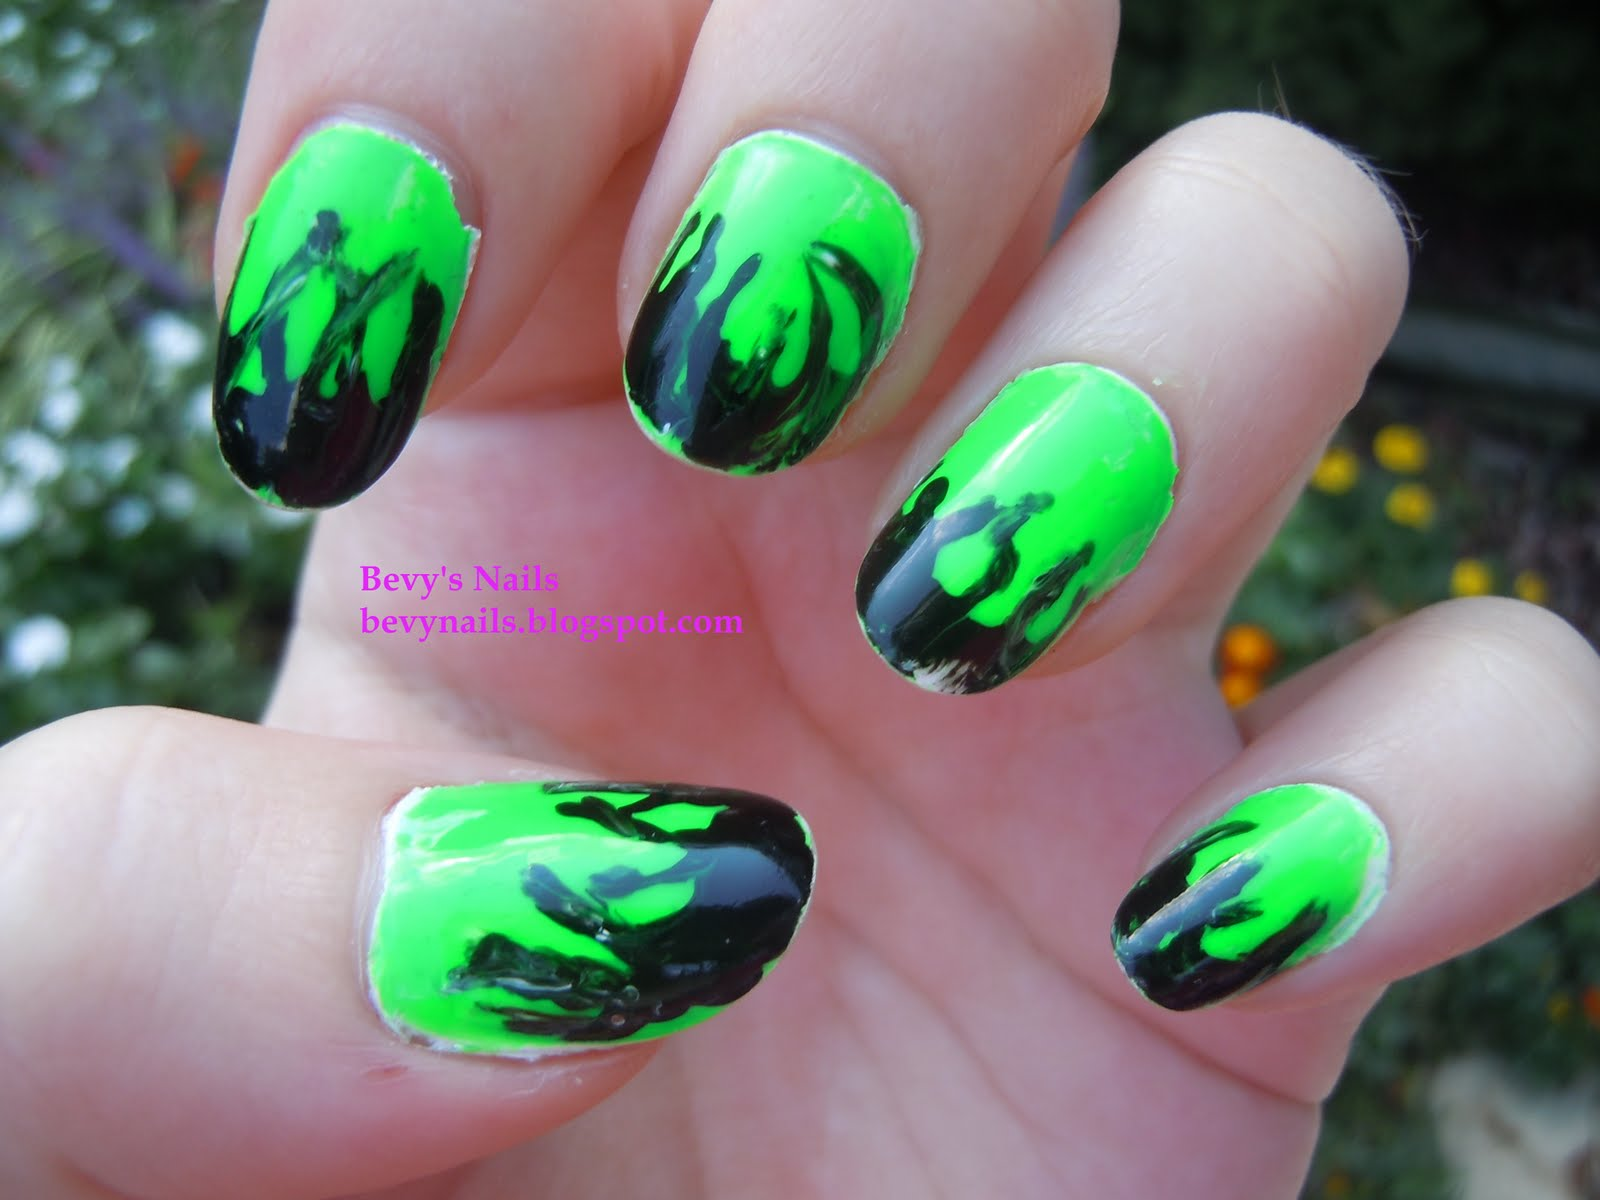 Bevy's Nails: Black and Green Flames